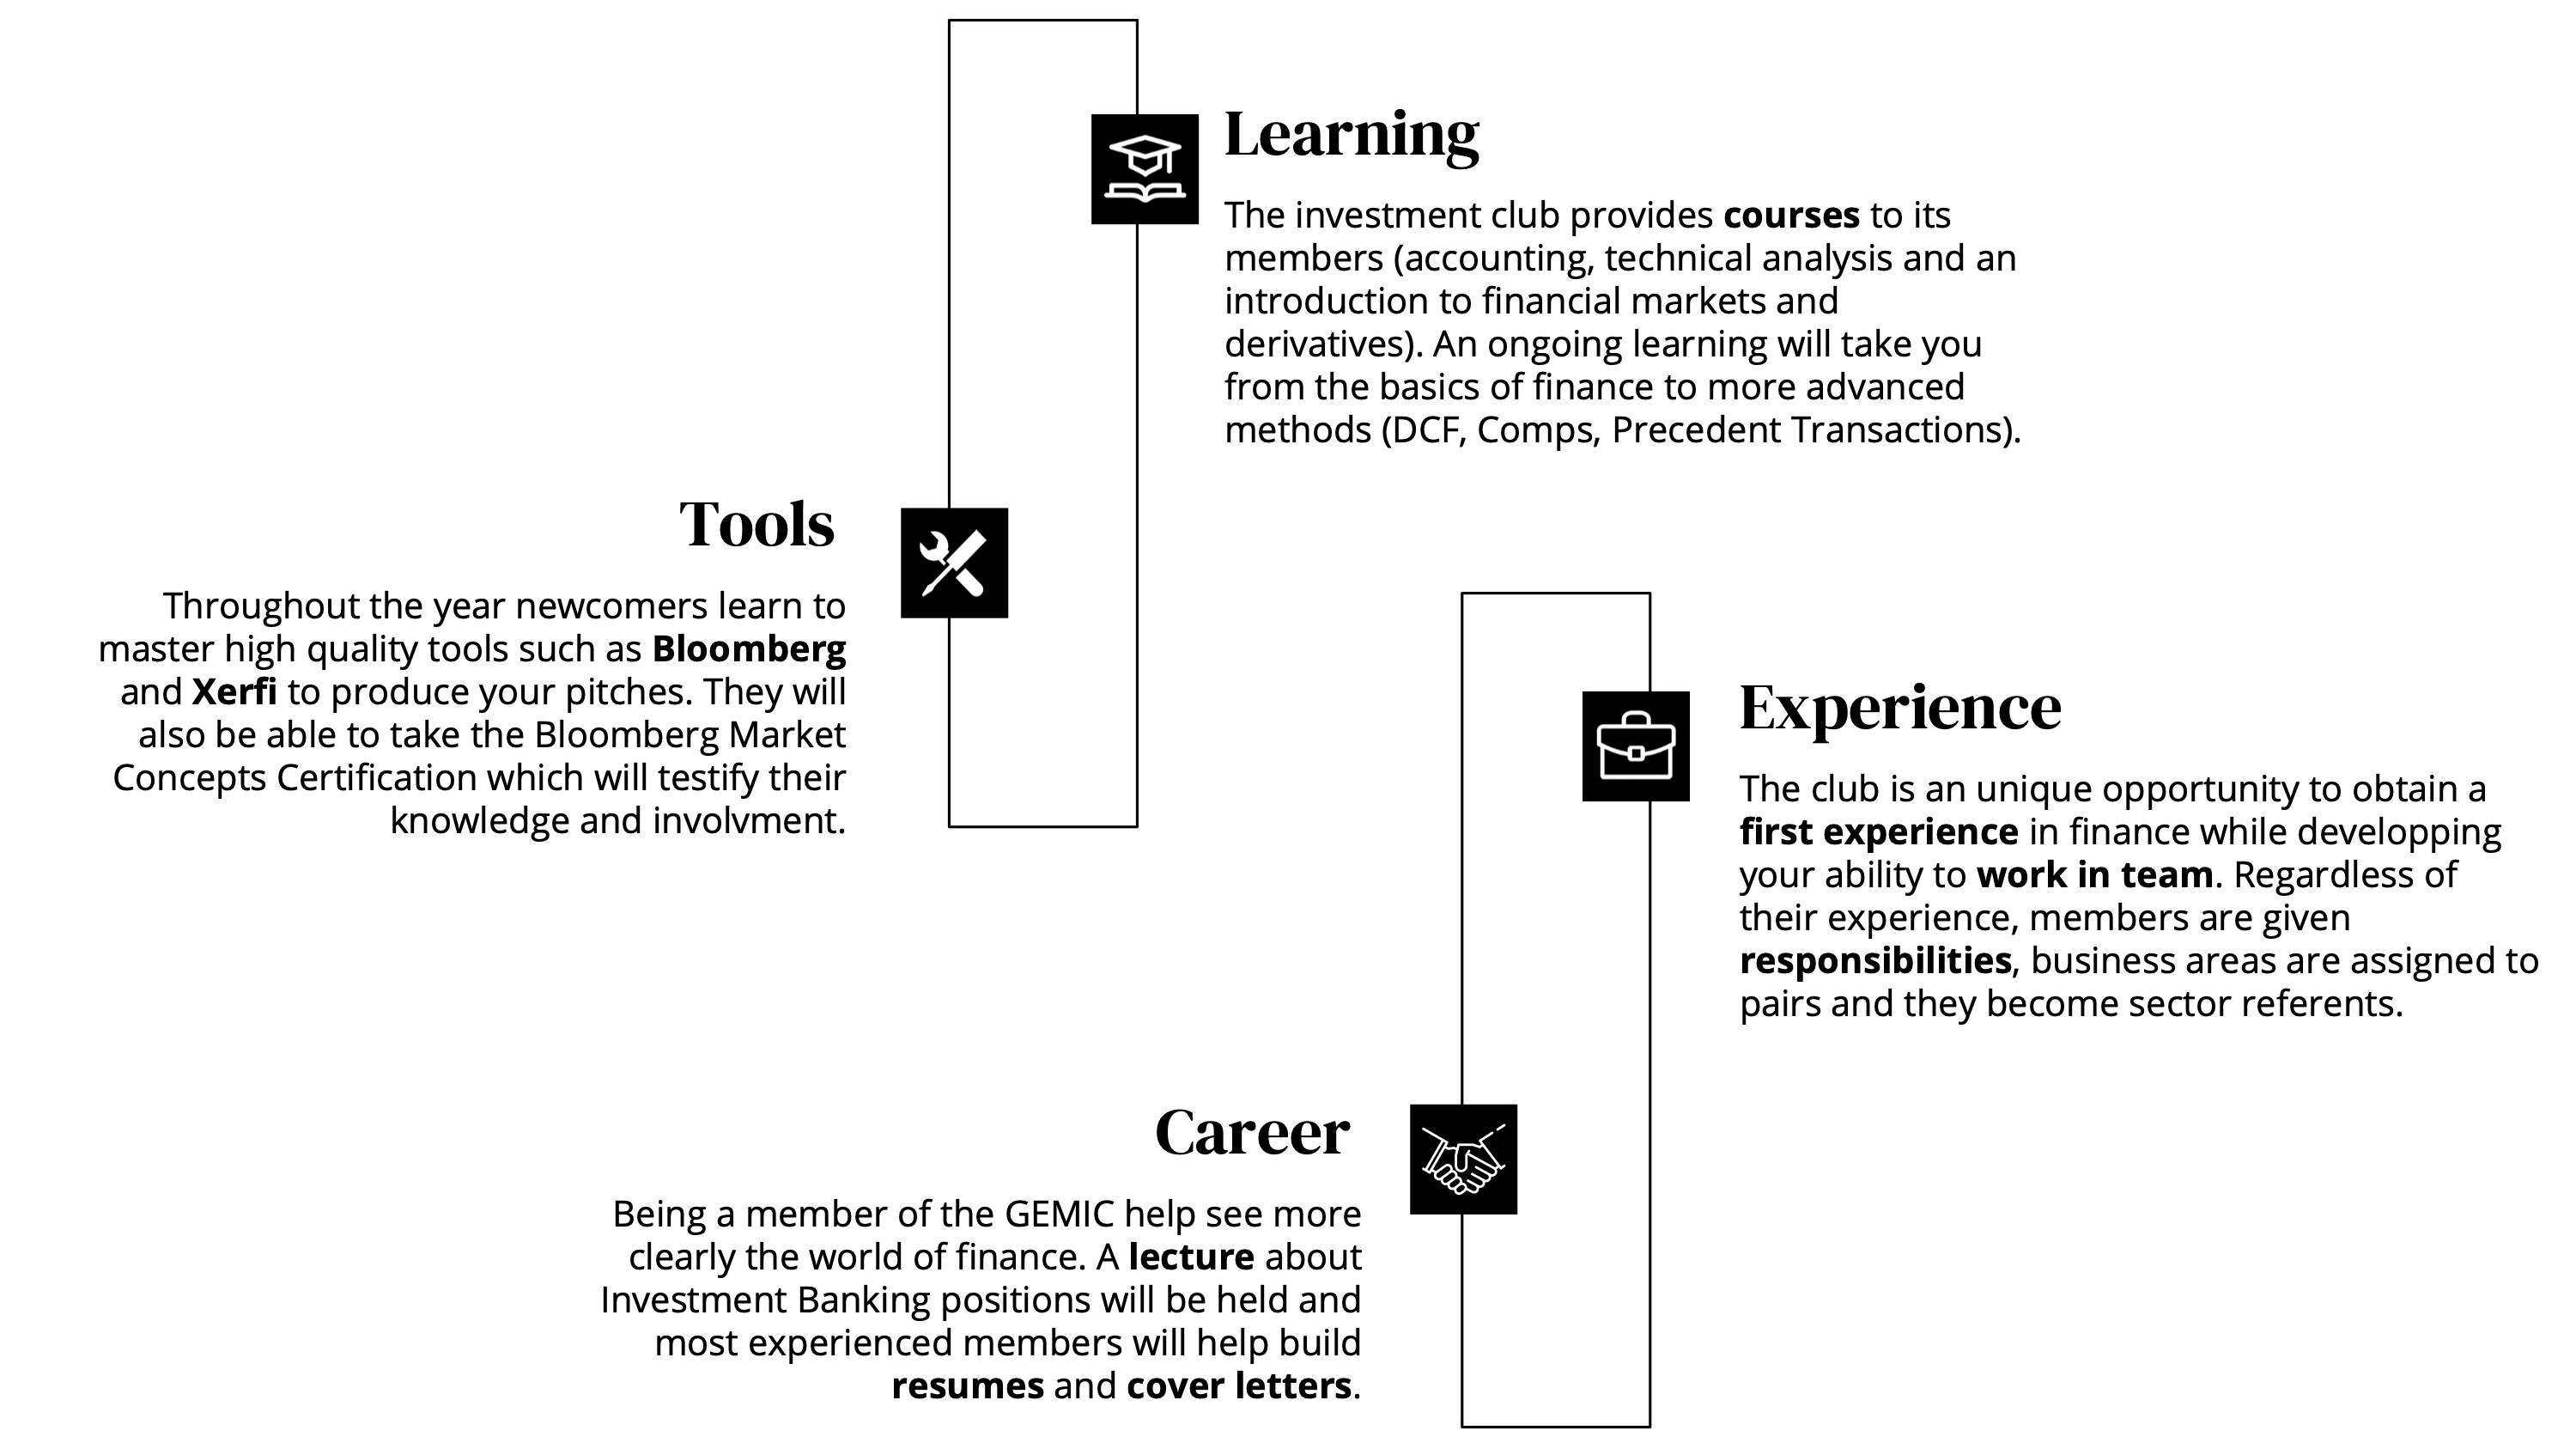 explanation of how the investment club works. (2/2)